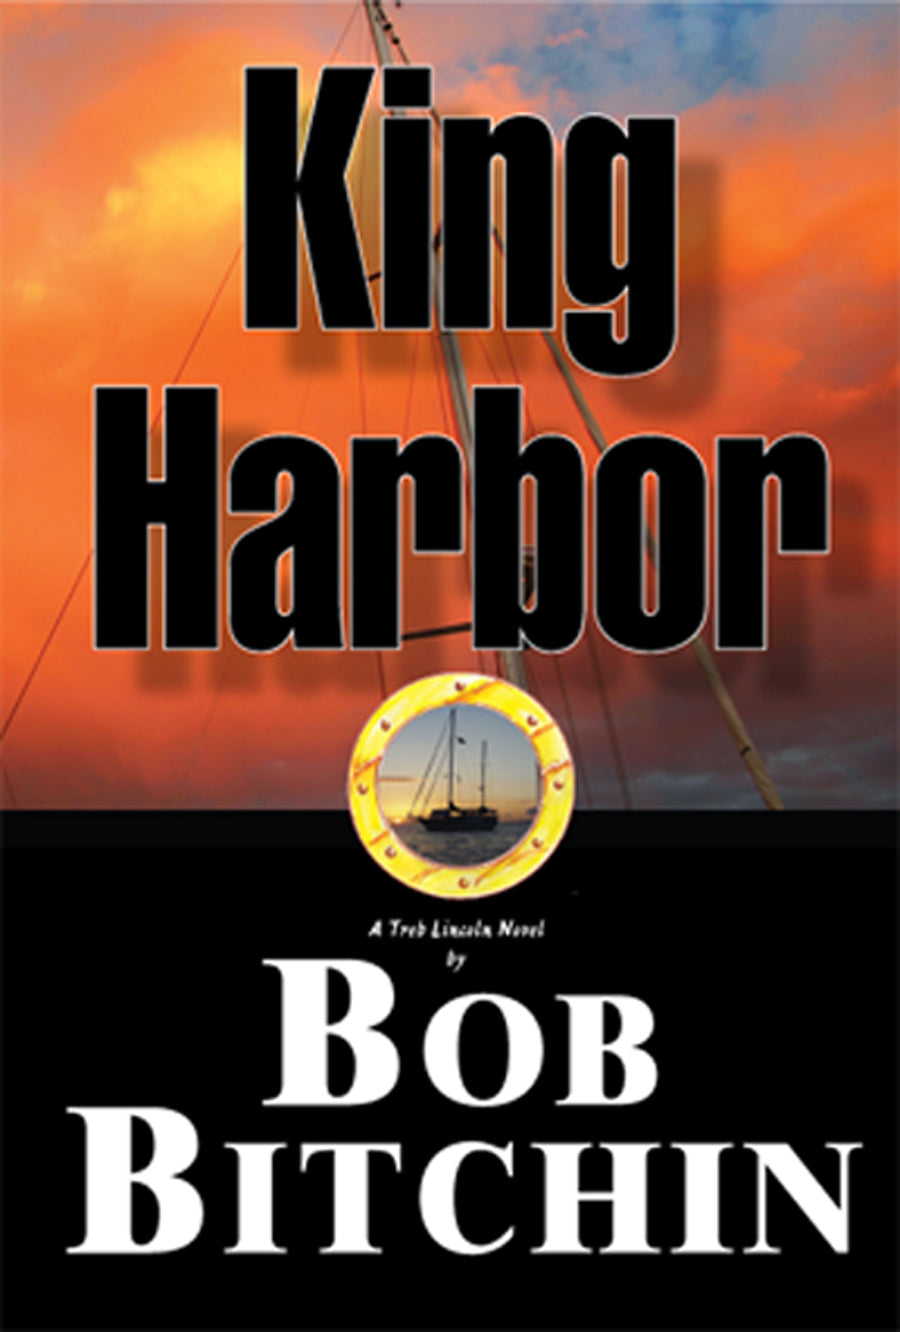 King Harbor